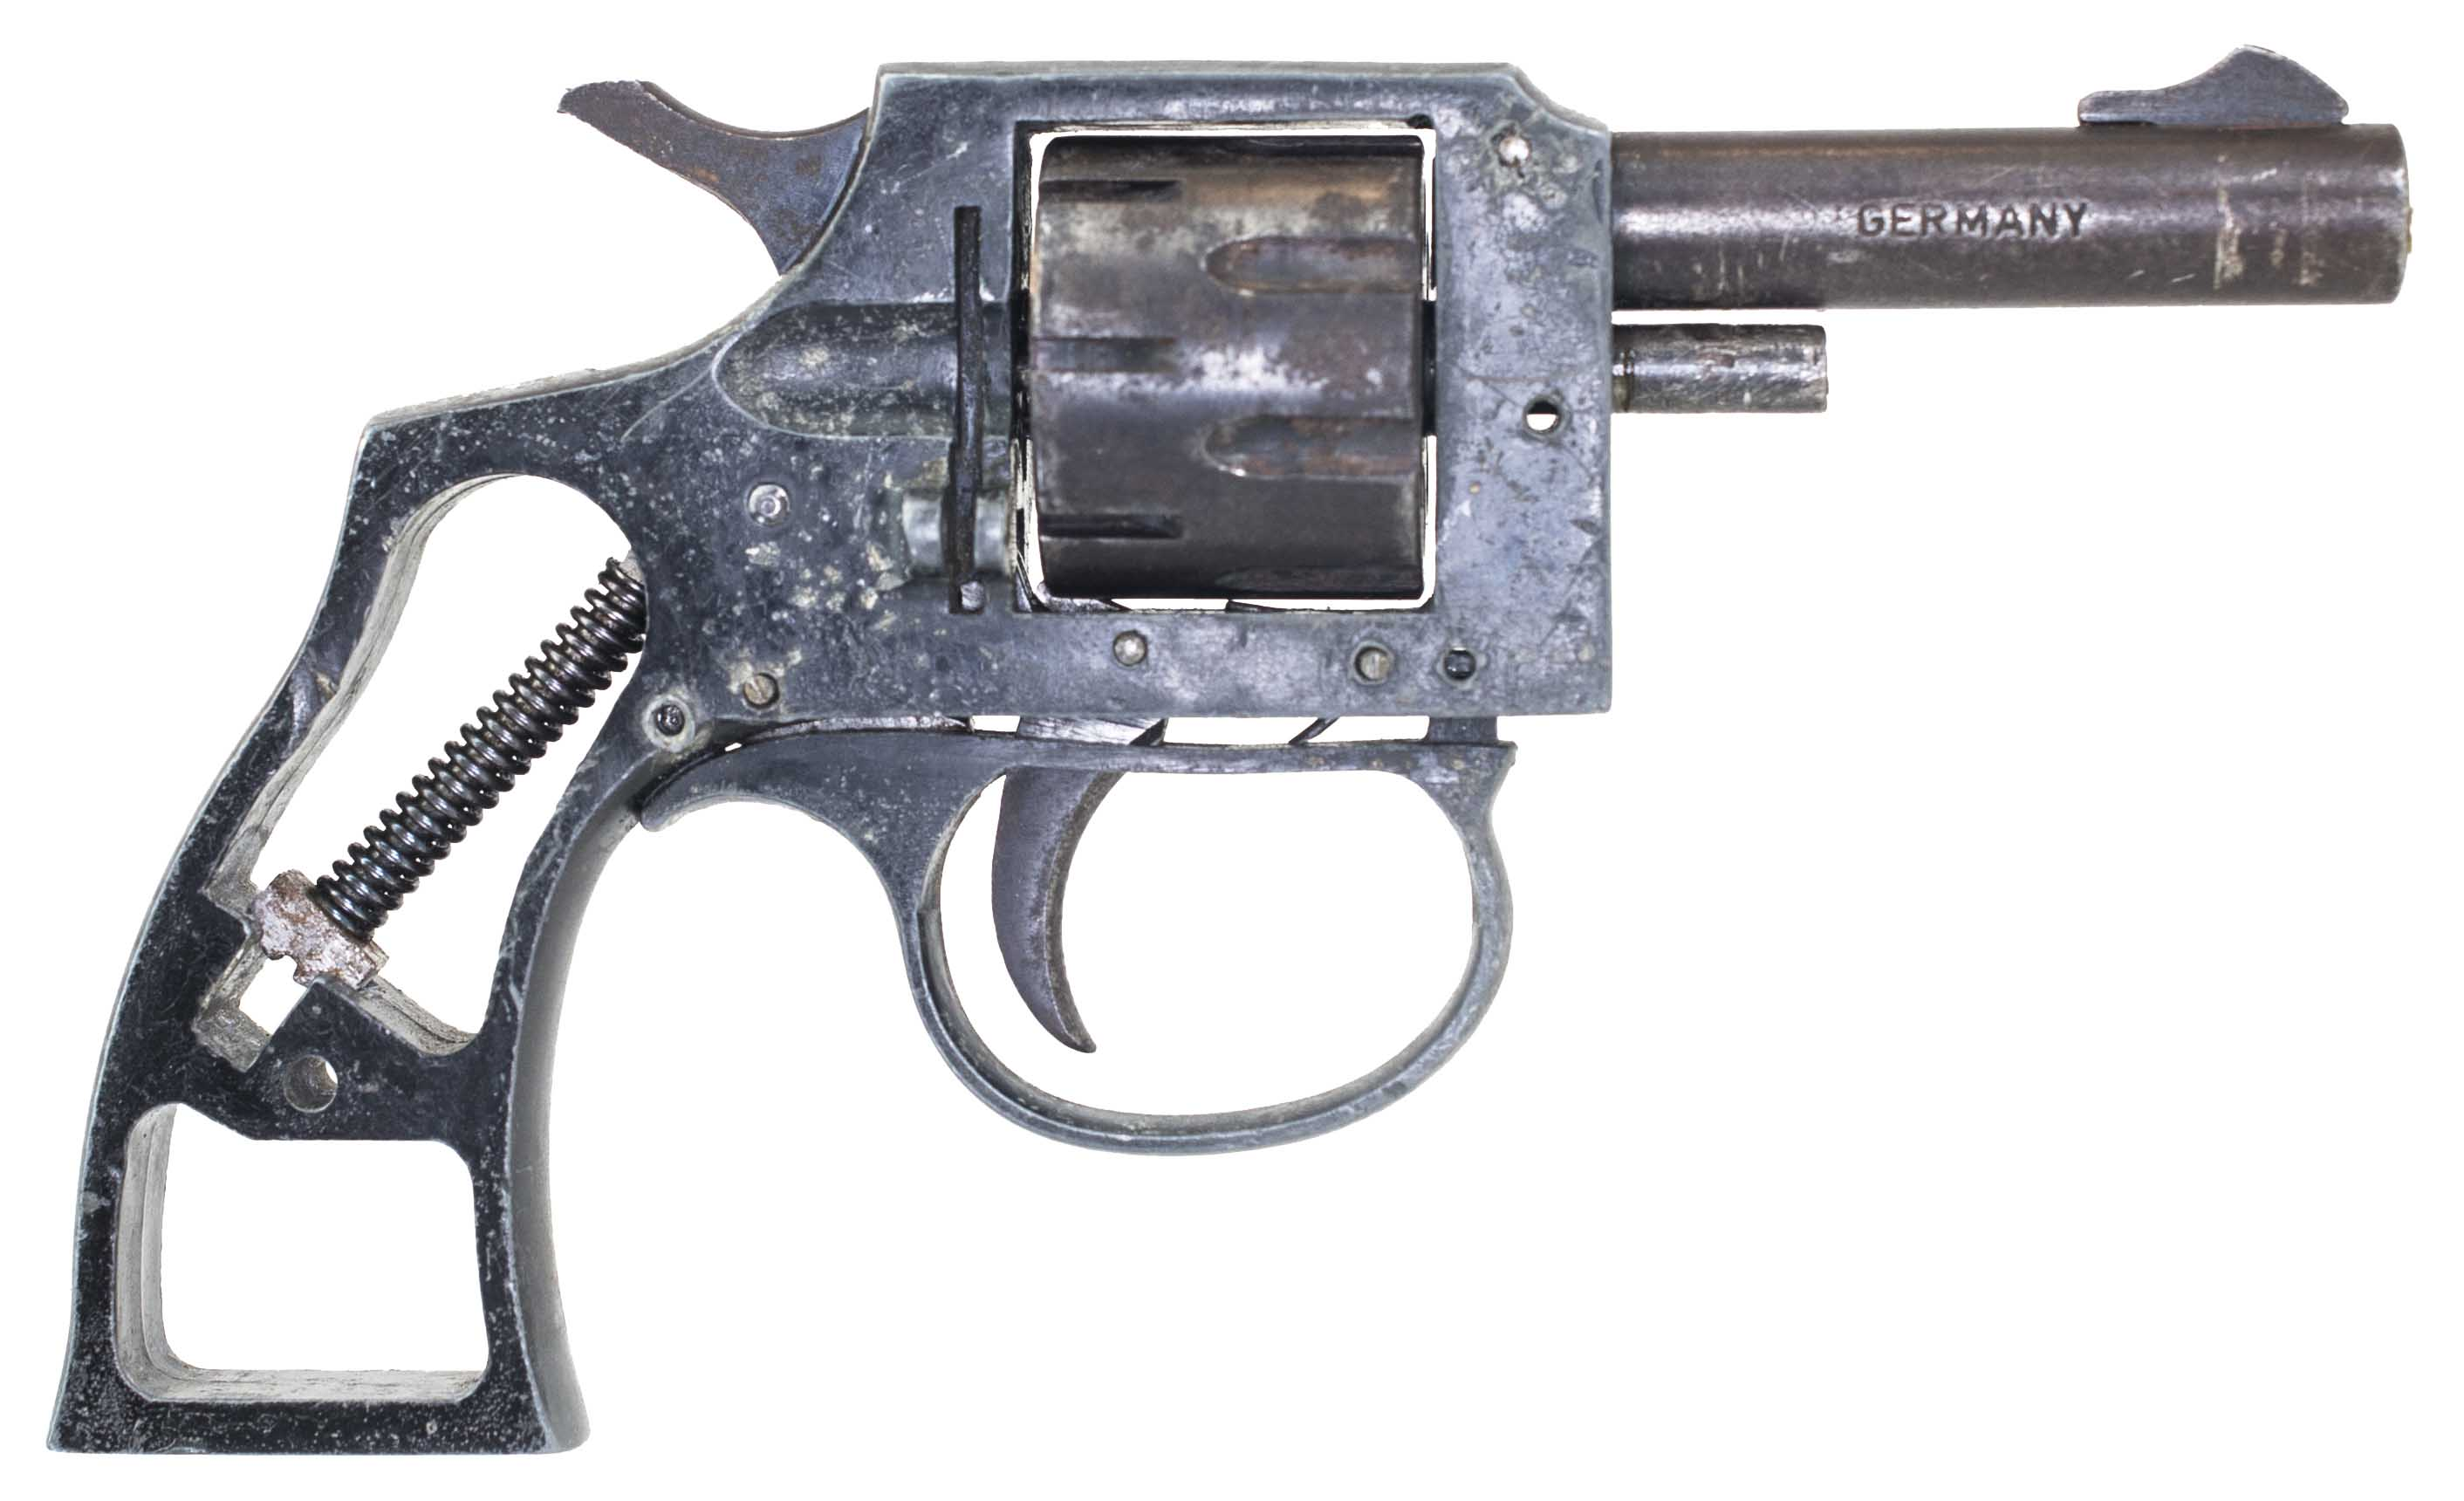 HERBERT SCHMIDT REVOLVER 22LR (Auction ID: 6254084, End Time : Dec